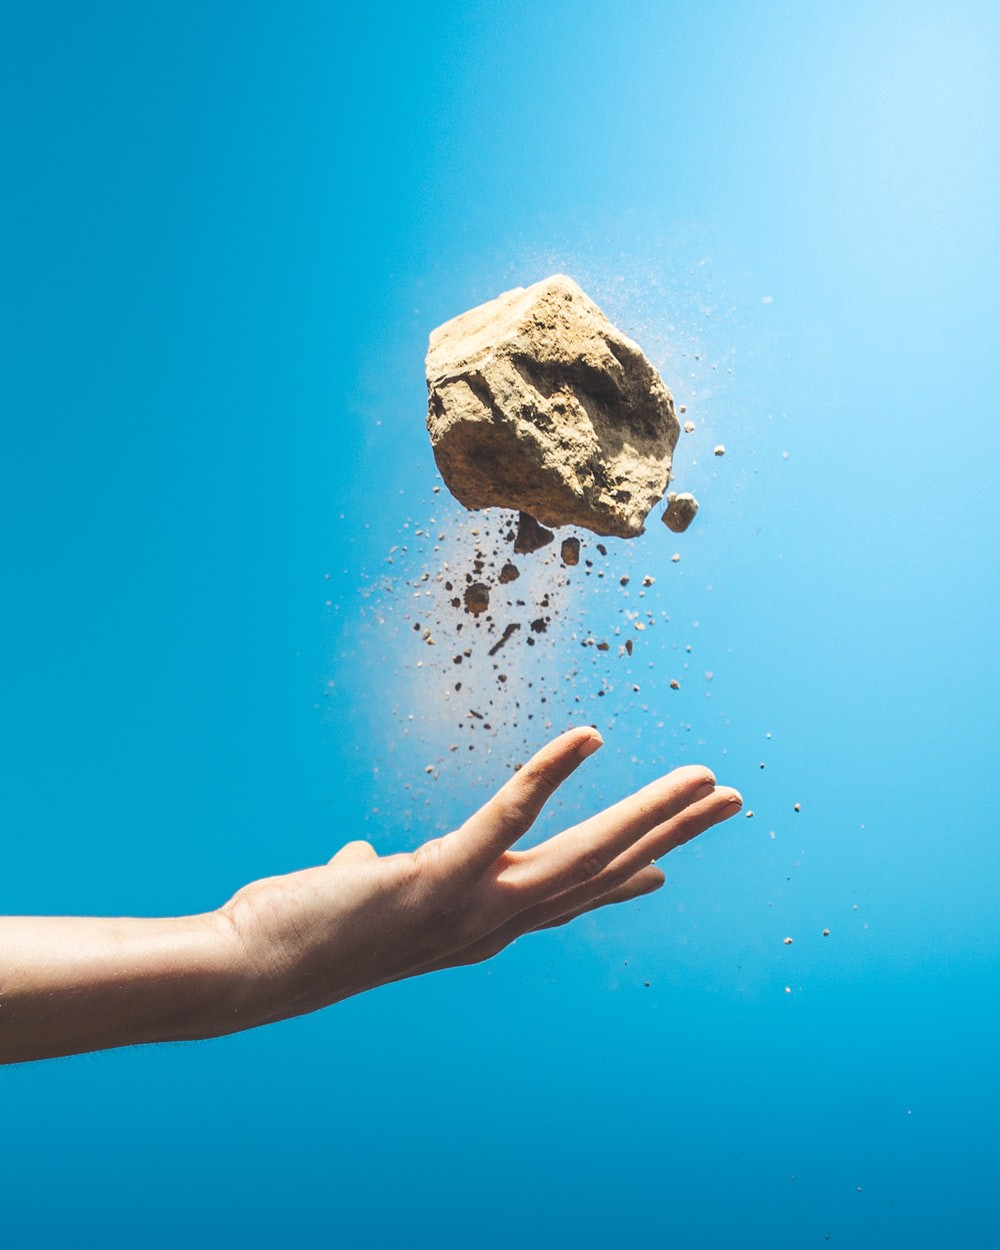 Person throwing a rock photo